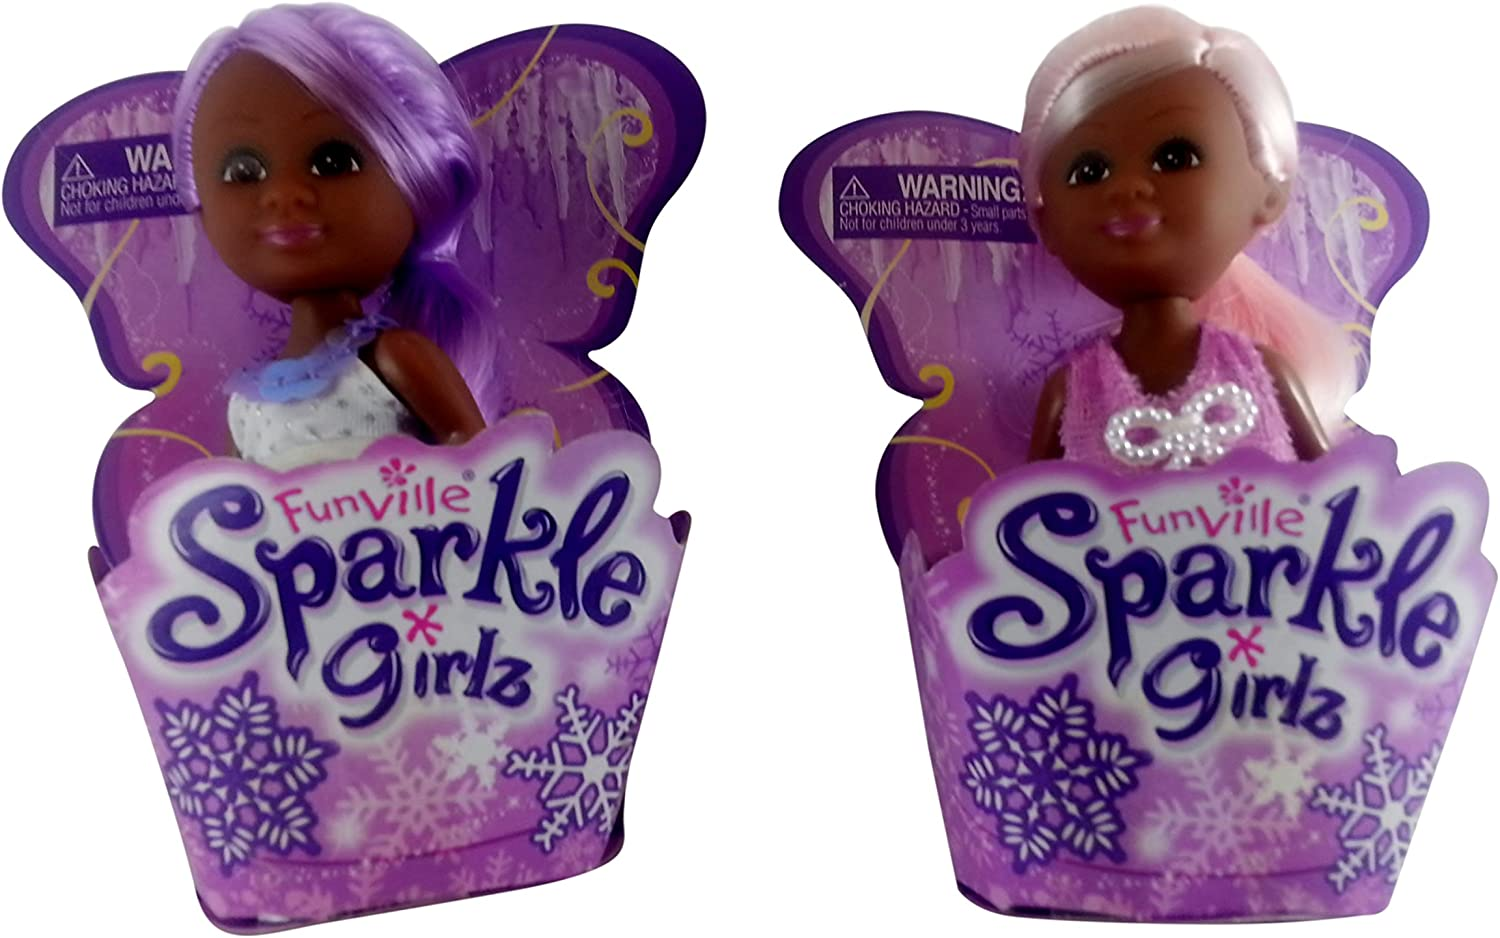 Funville Sparkle Girlz Little Princess Dolls, Set of 2 Pink and Purple Hair